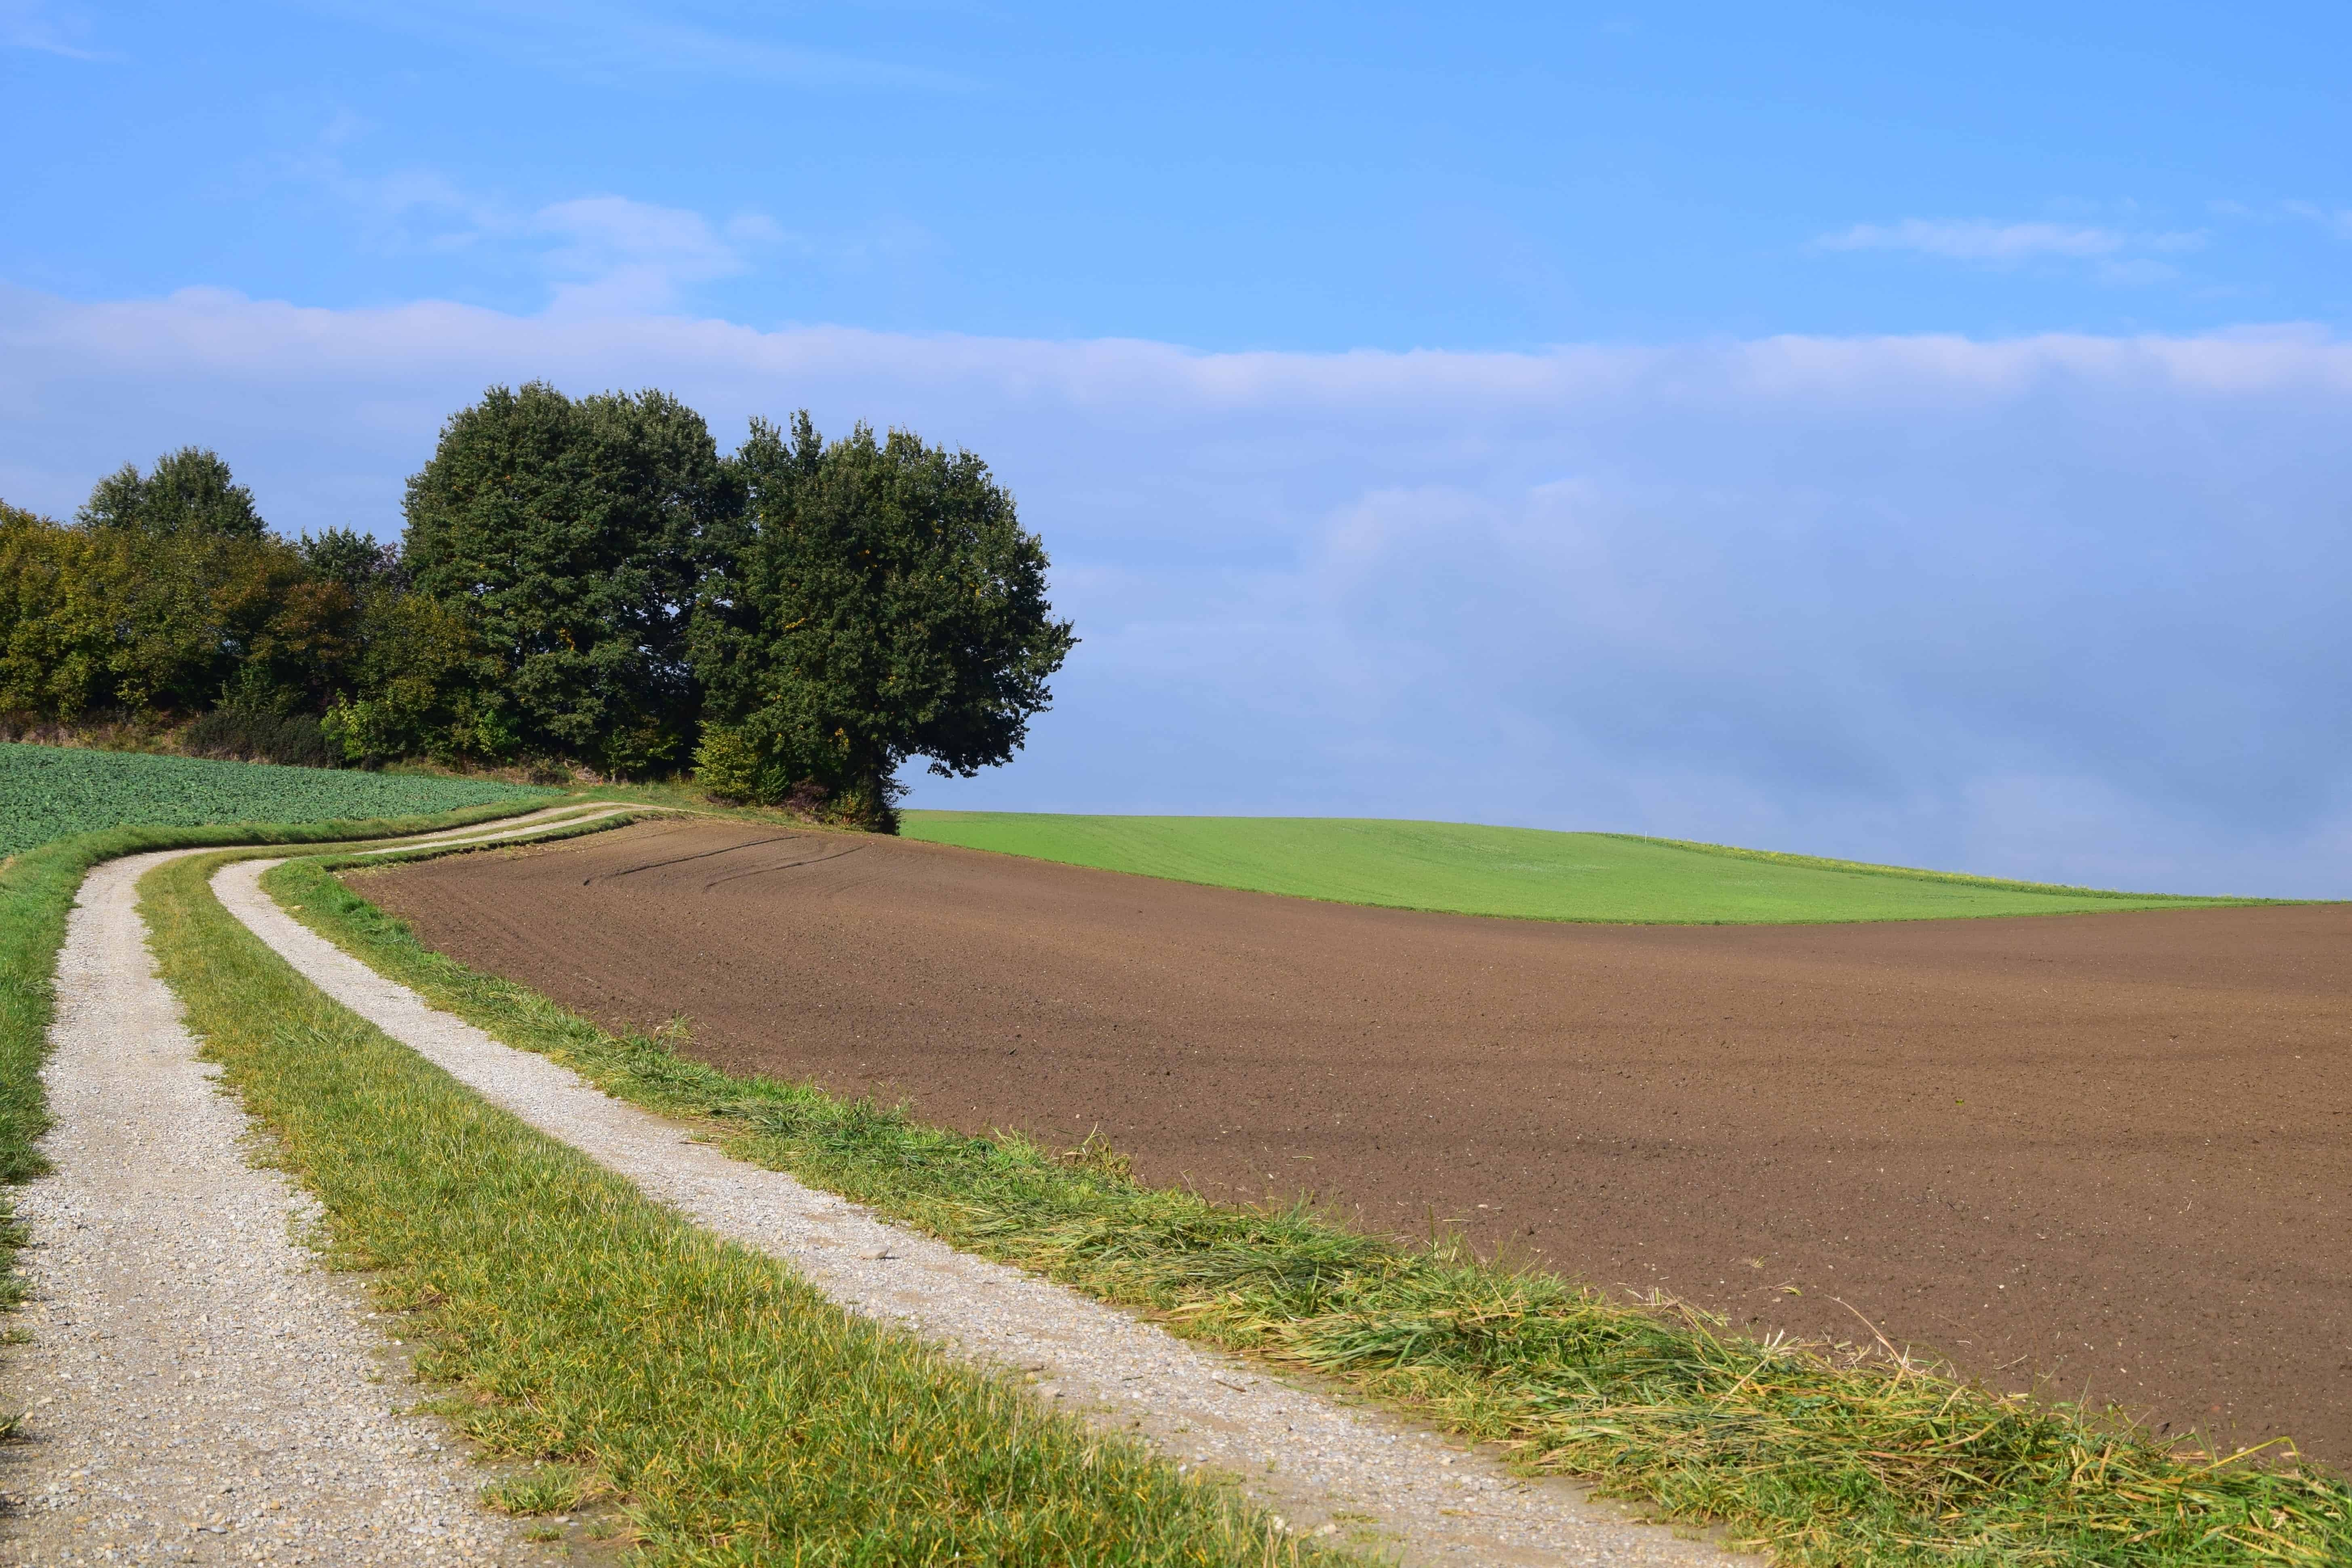 Grass Landscape Free picture road countryside agriculture landscape tree field blue sky countryside nature landscape road field green grass workwithnaturefo